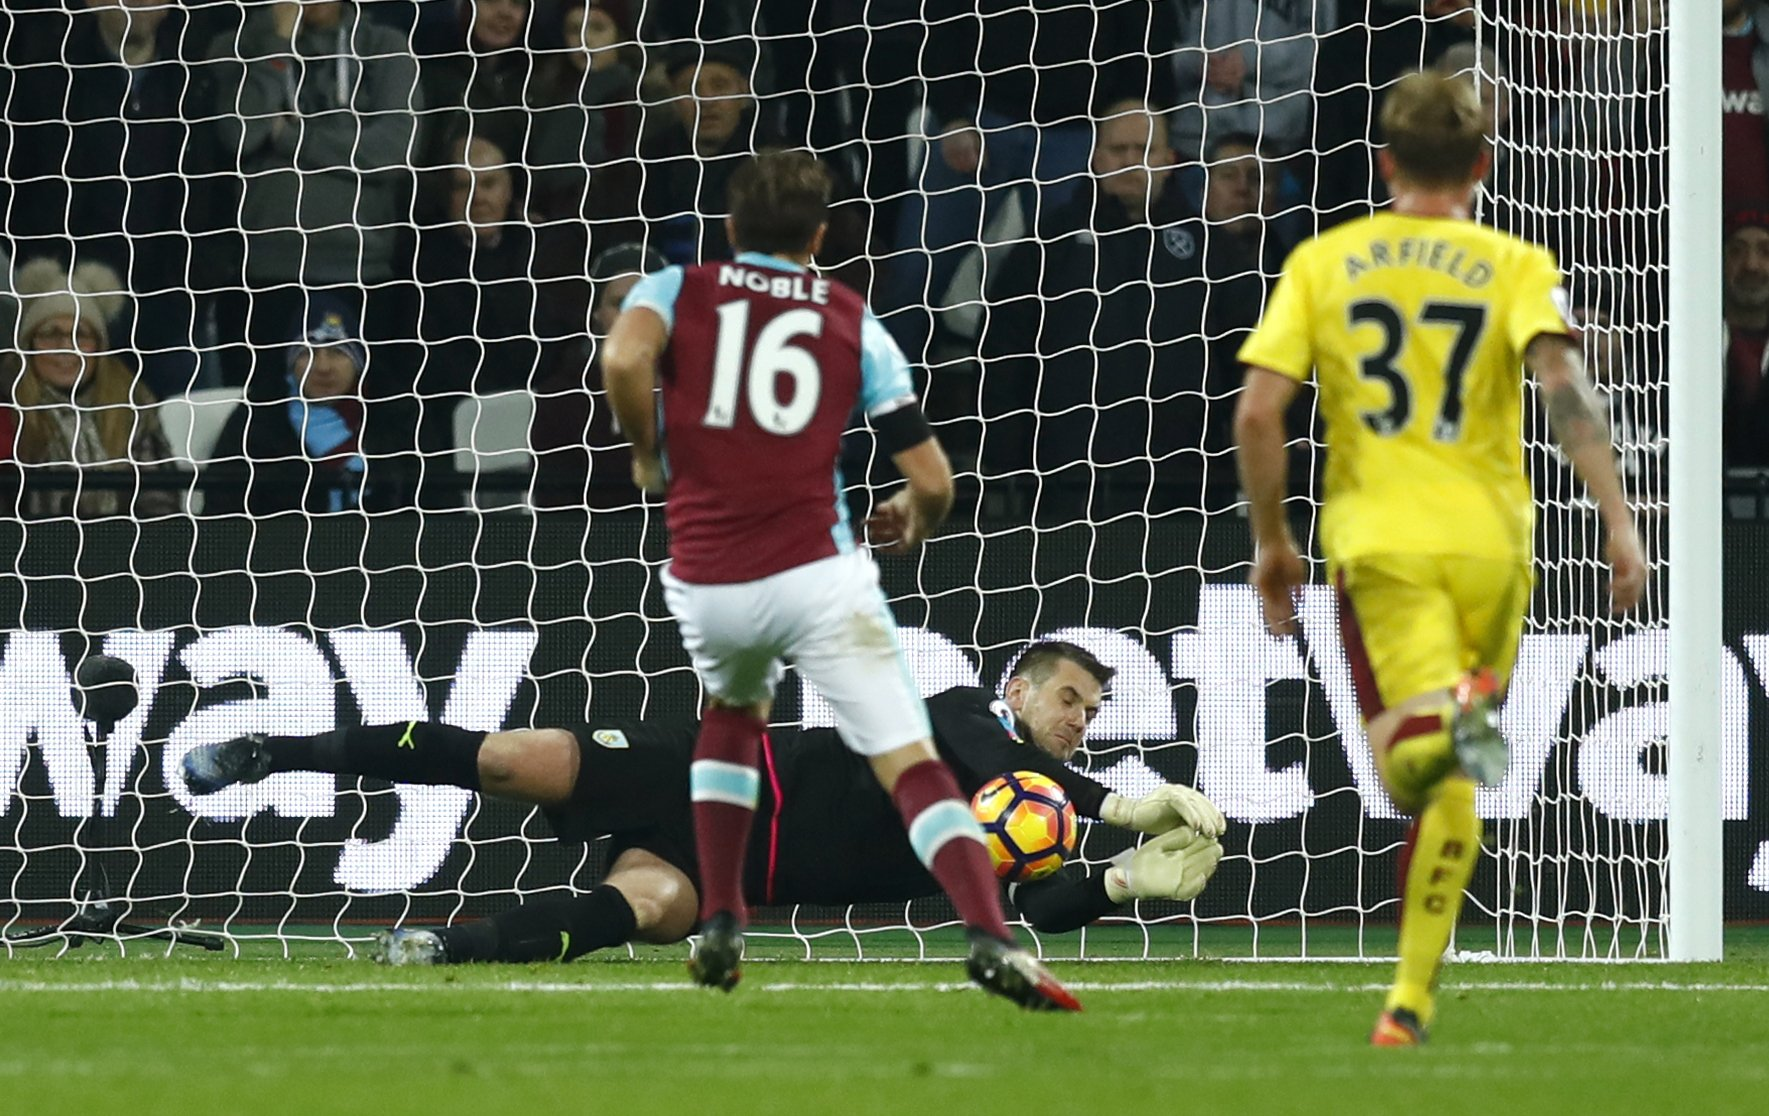 FULL-TIME West Ham 1-0 Burnley. Mark Noble's first-half goal gives the Hammers all 3 points #WHUBUR https://t.co/A3BVCbNbW9